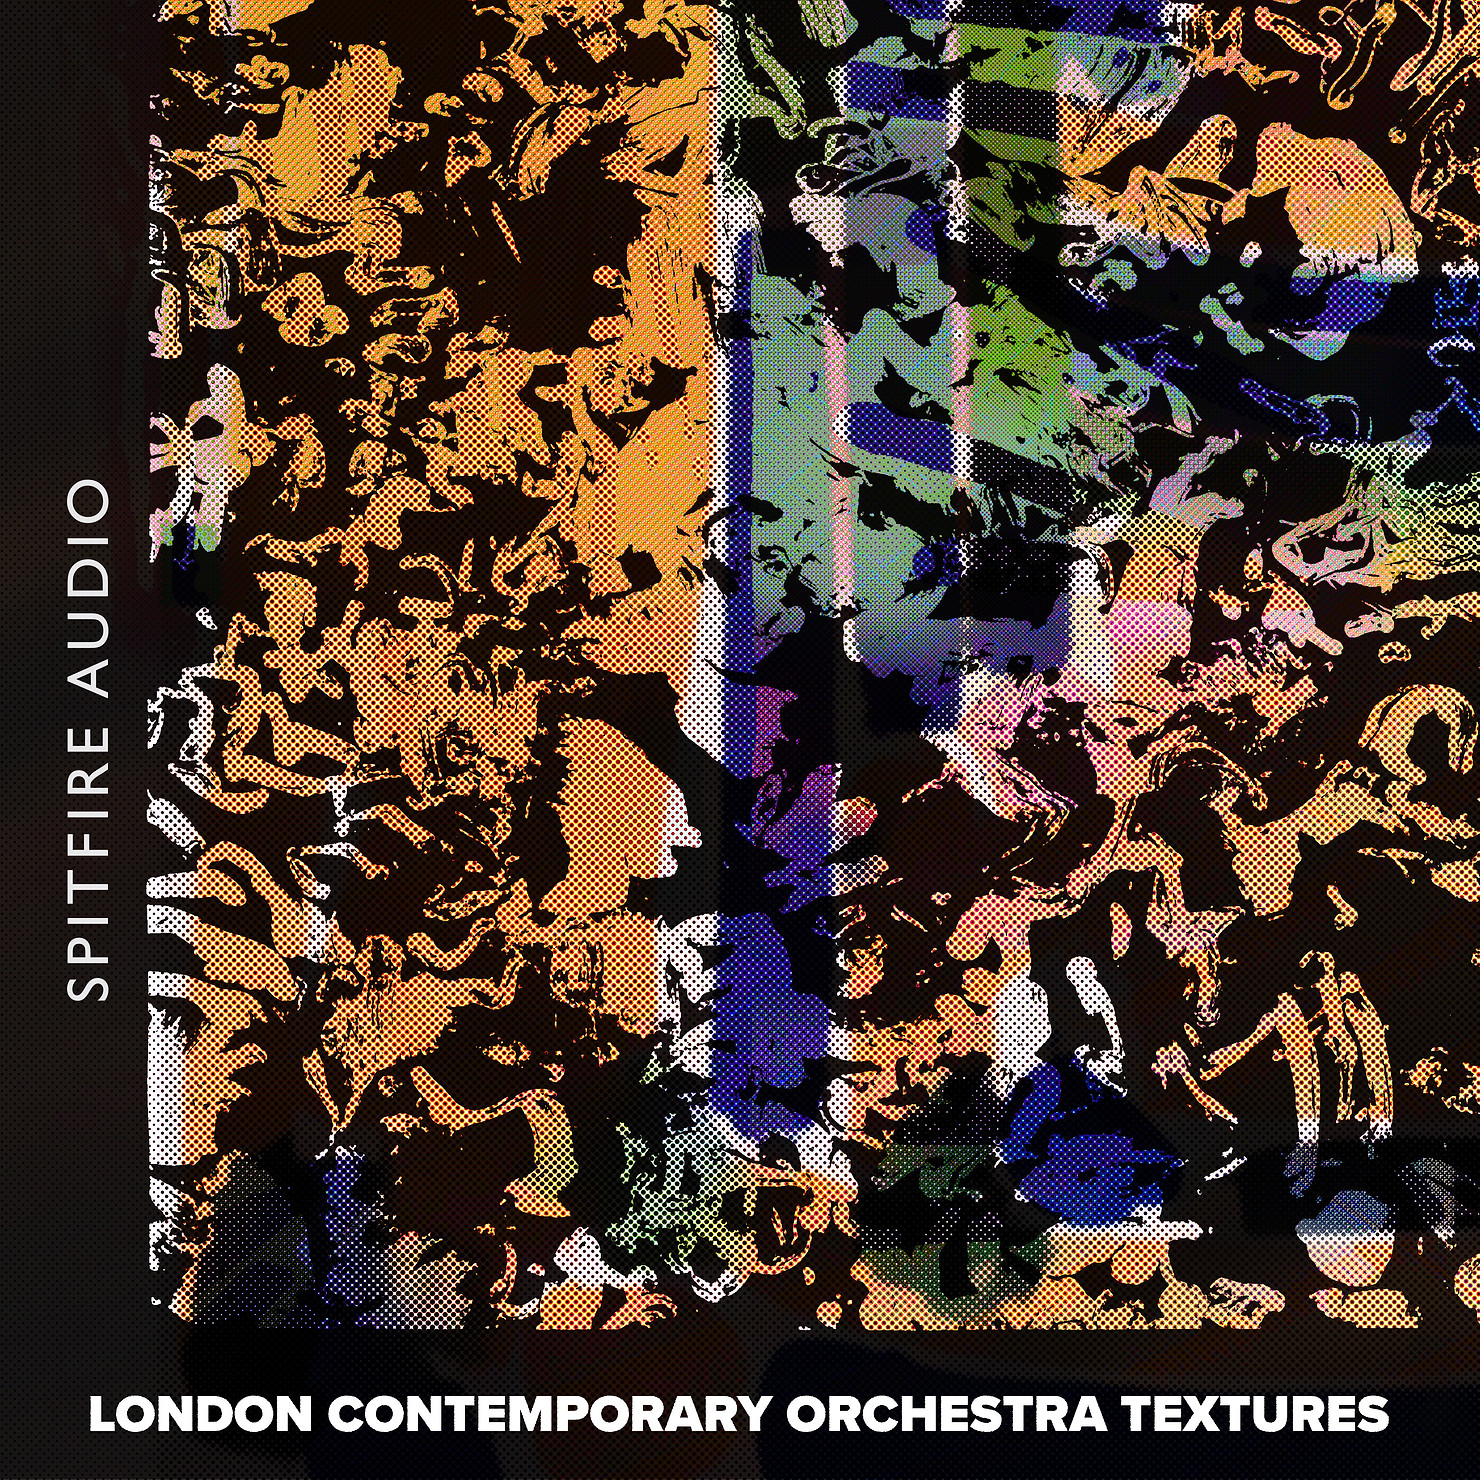 London Contemporary Orchestra Textures by Spitfire Audio